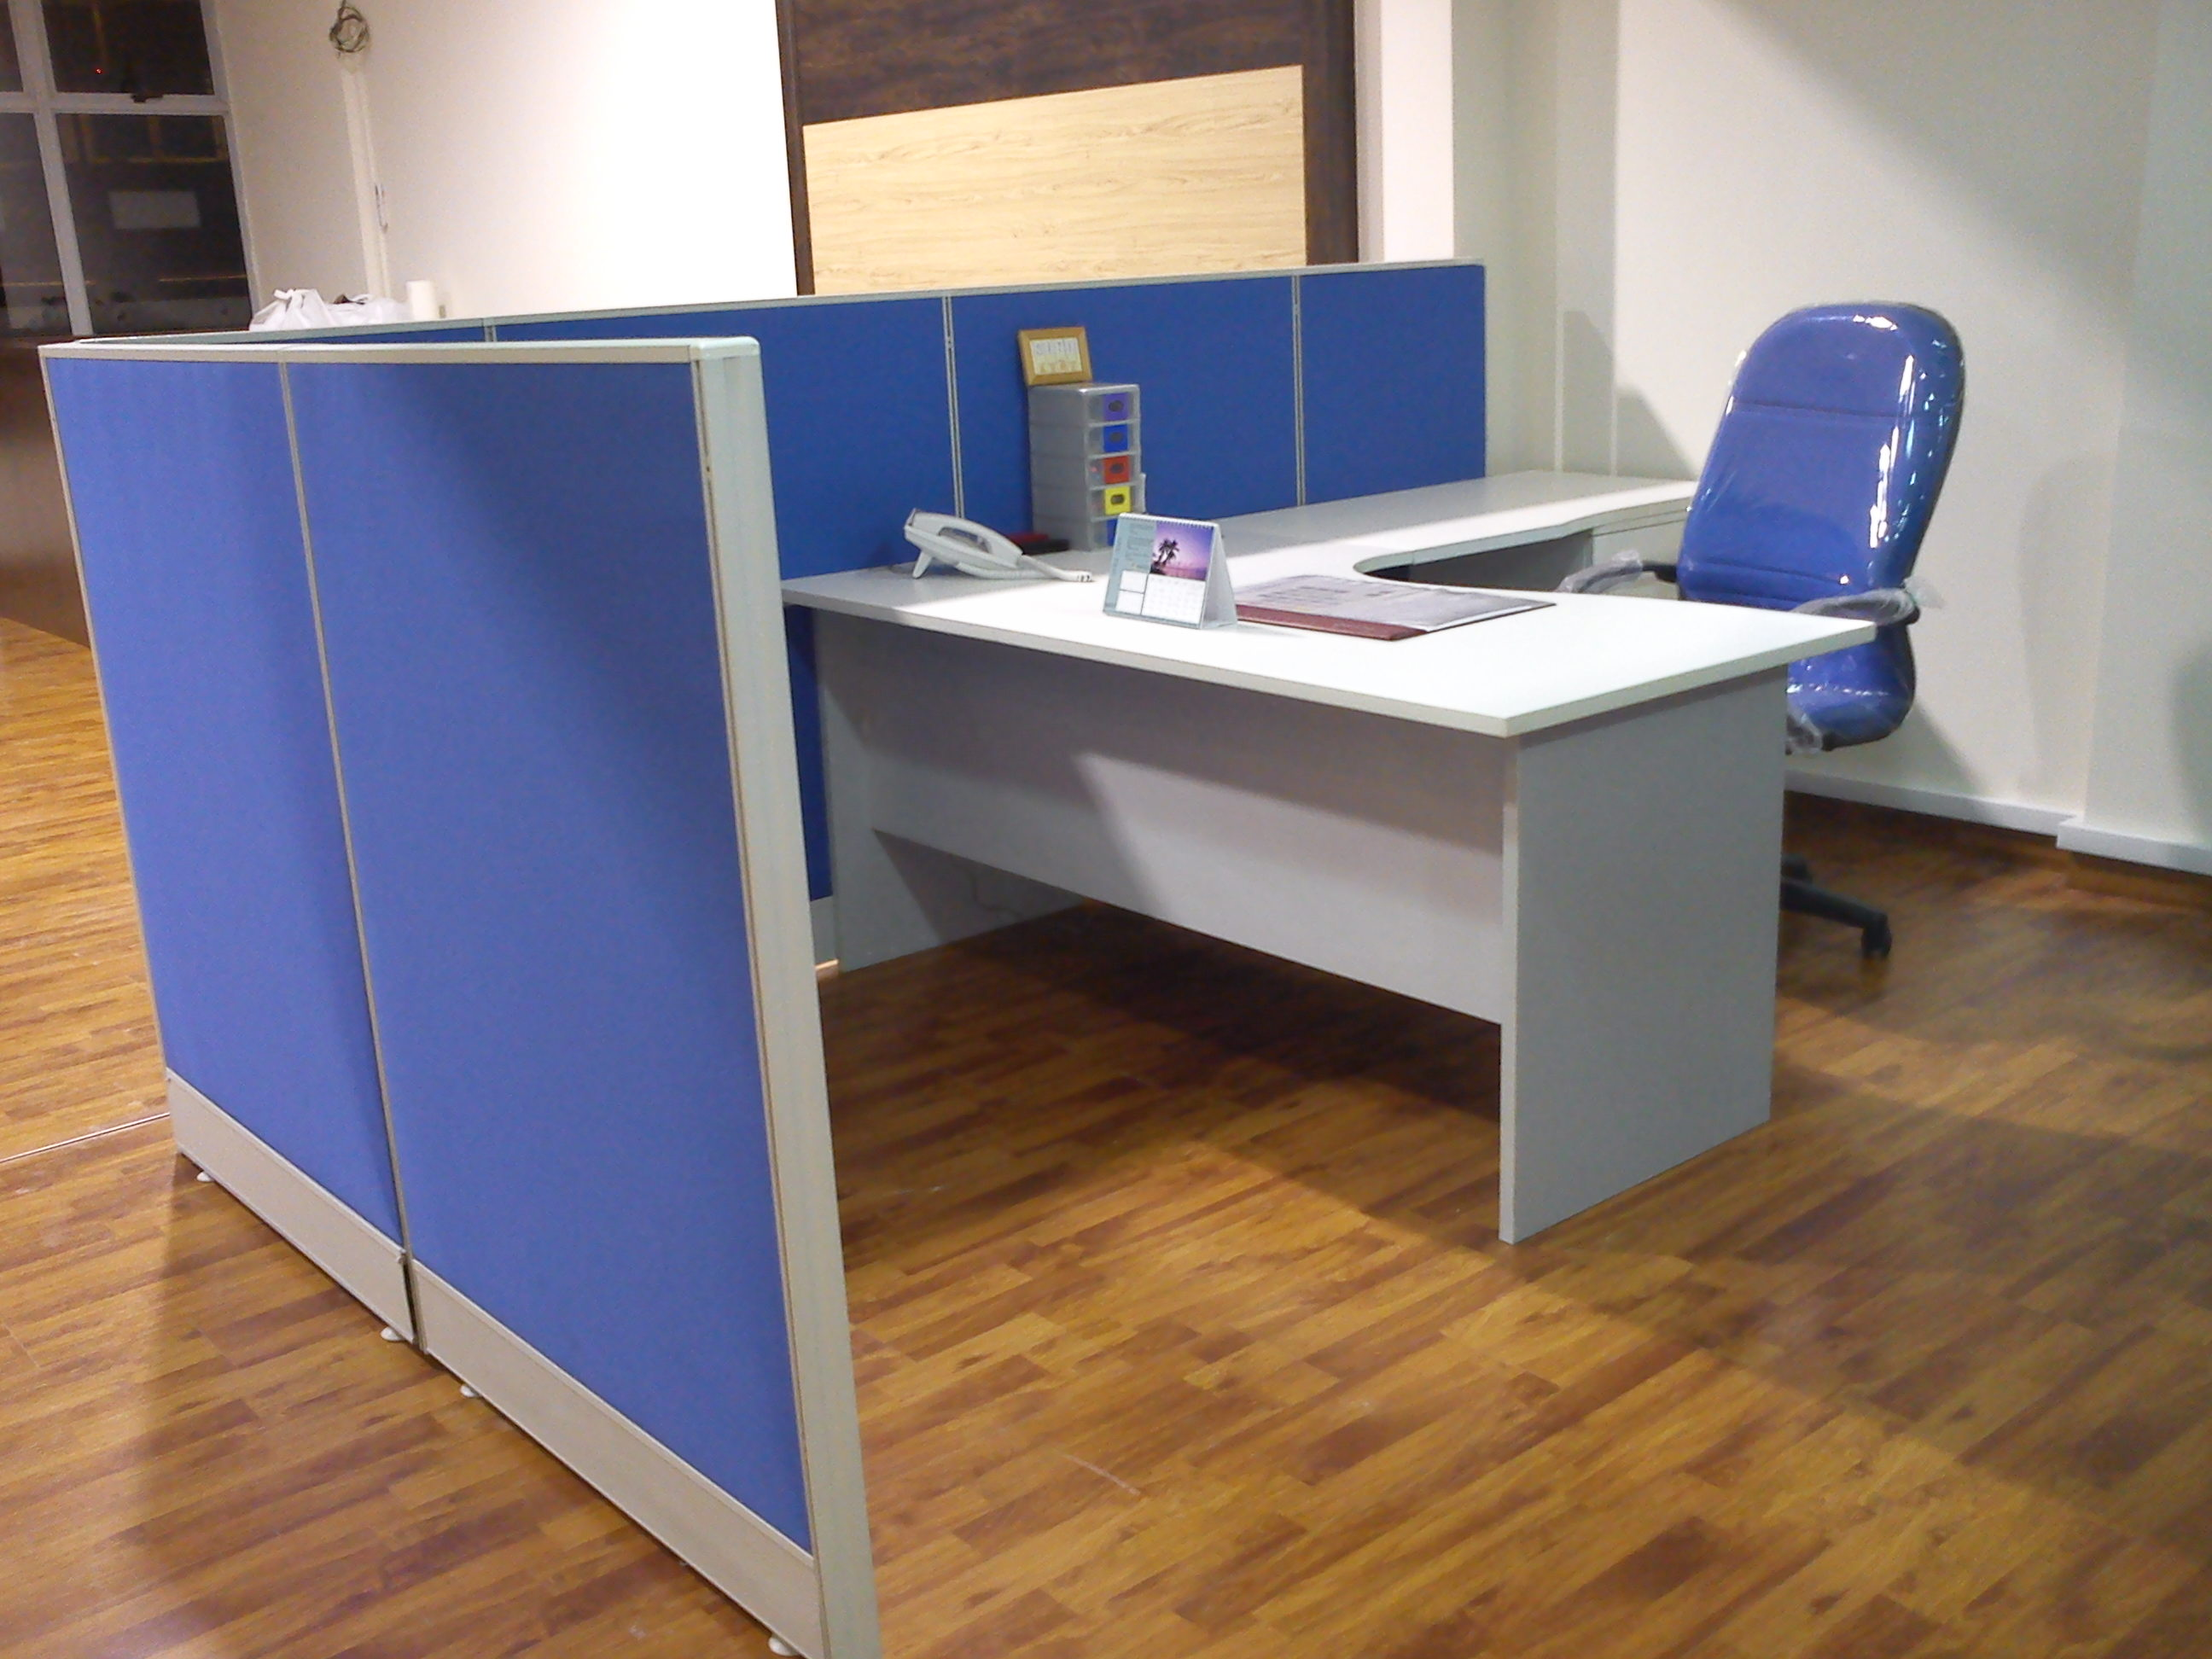 FOR SALE: Various Office Tables, Workstations, Chairs, Cabinets.. New & Used To clear